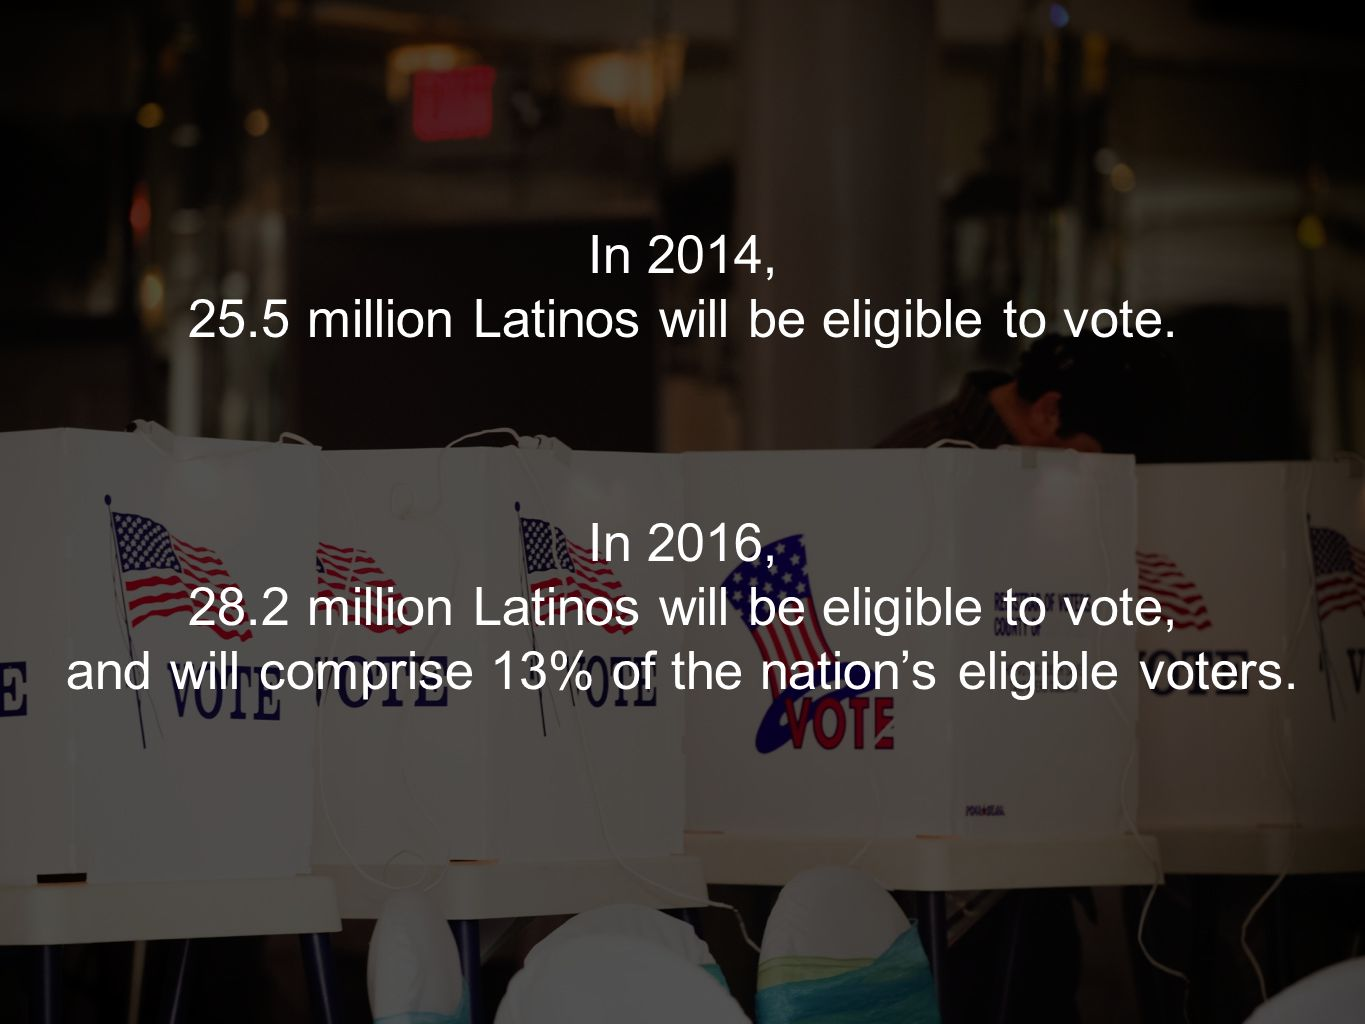 In 2014, 25.5 million Latinos will be eligible to vote. In 2016, 28.2 million Latinos will be eligible to vote, and will comprise 13% of the nation's